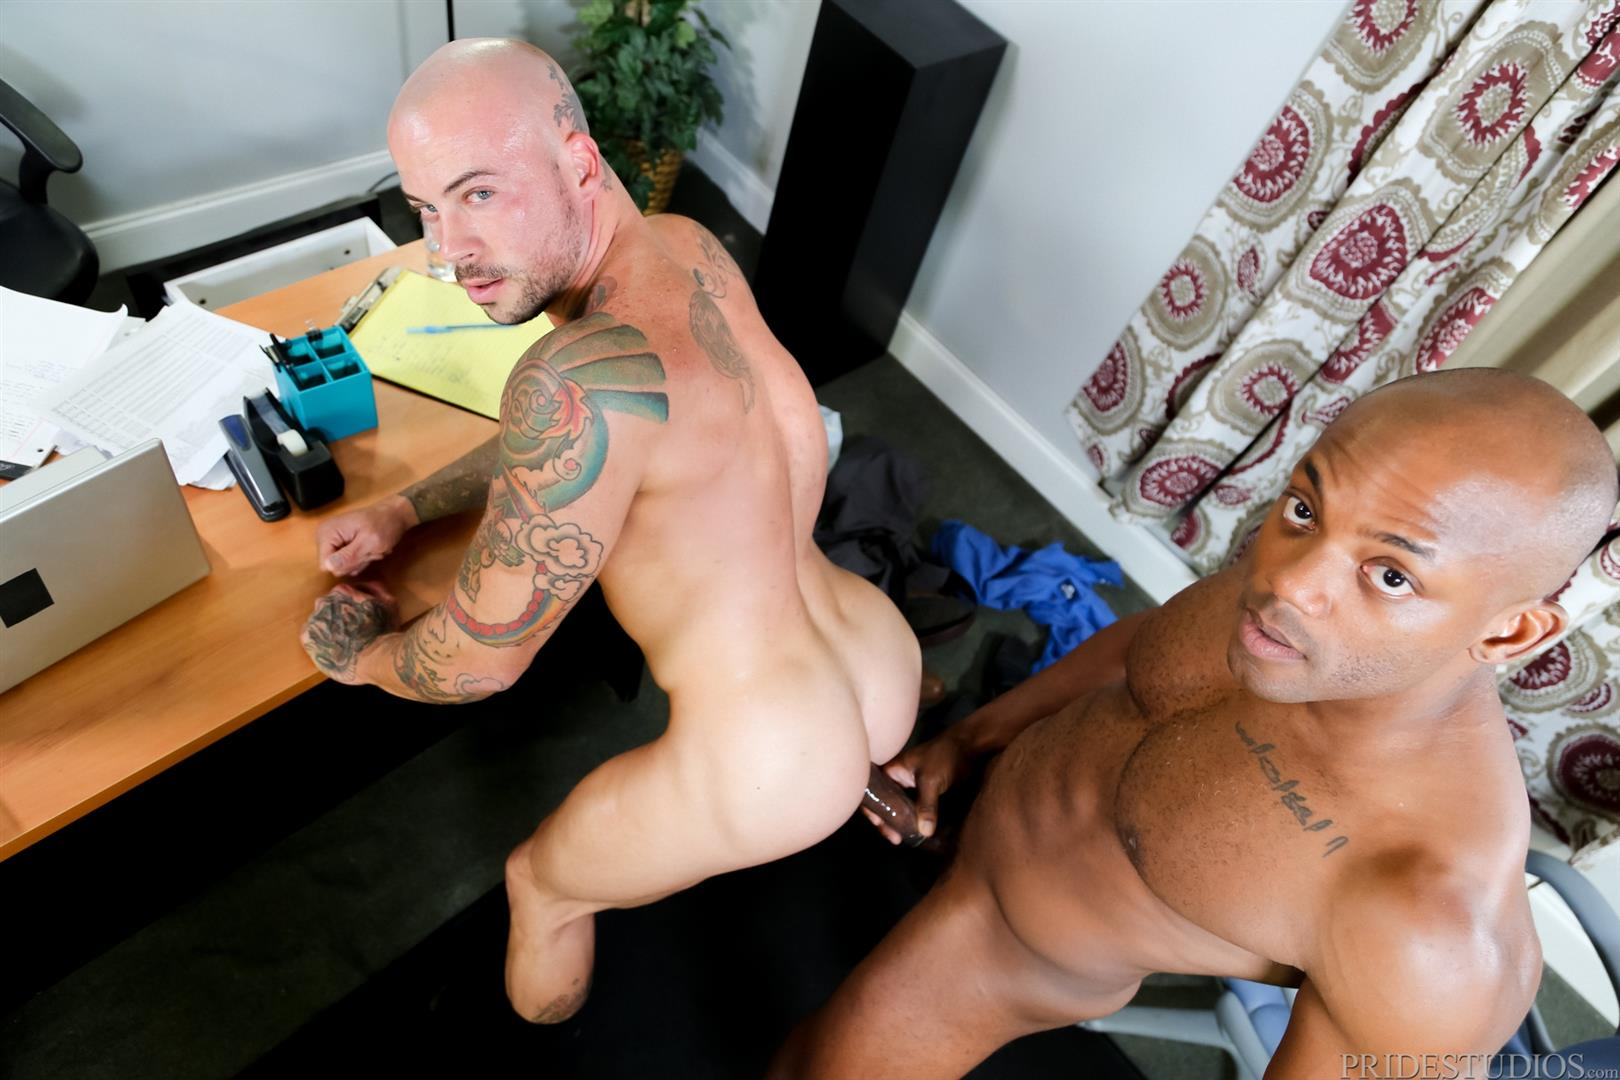 Sean Duran and Osiris Blade Extra Big Dicks Black Cock Interracial Amateur Gay Porn 14 White Muscle Hunk Takes A Big Black Cock Up The Ass During A Job Interview